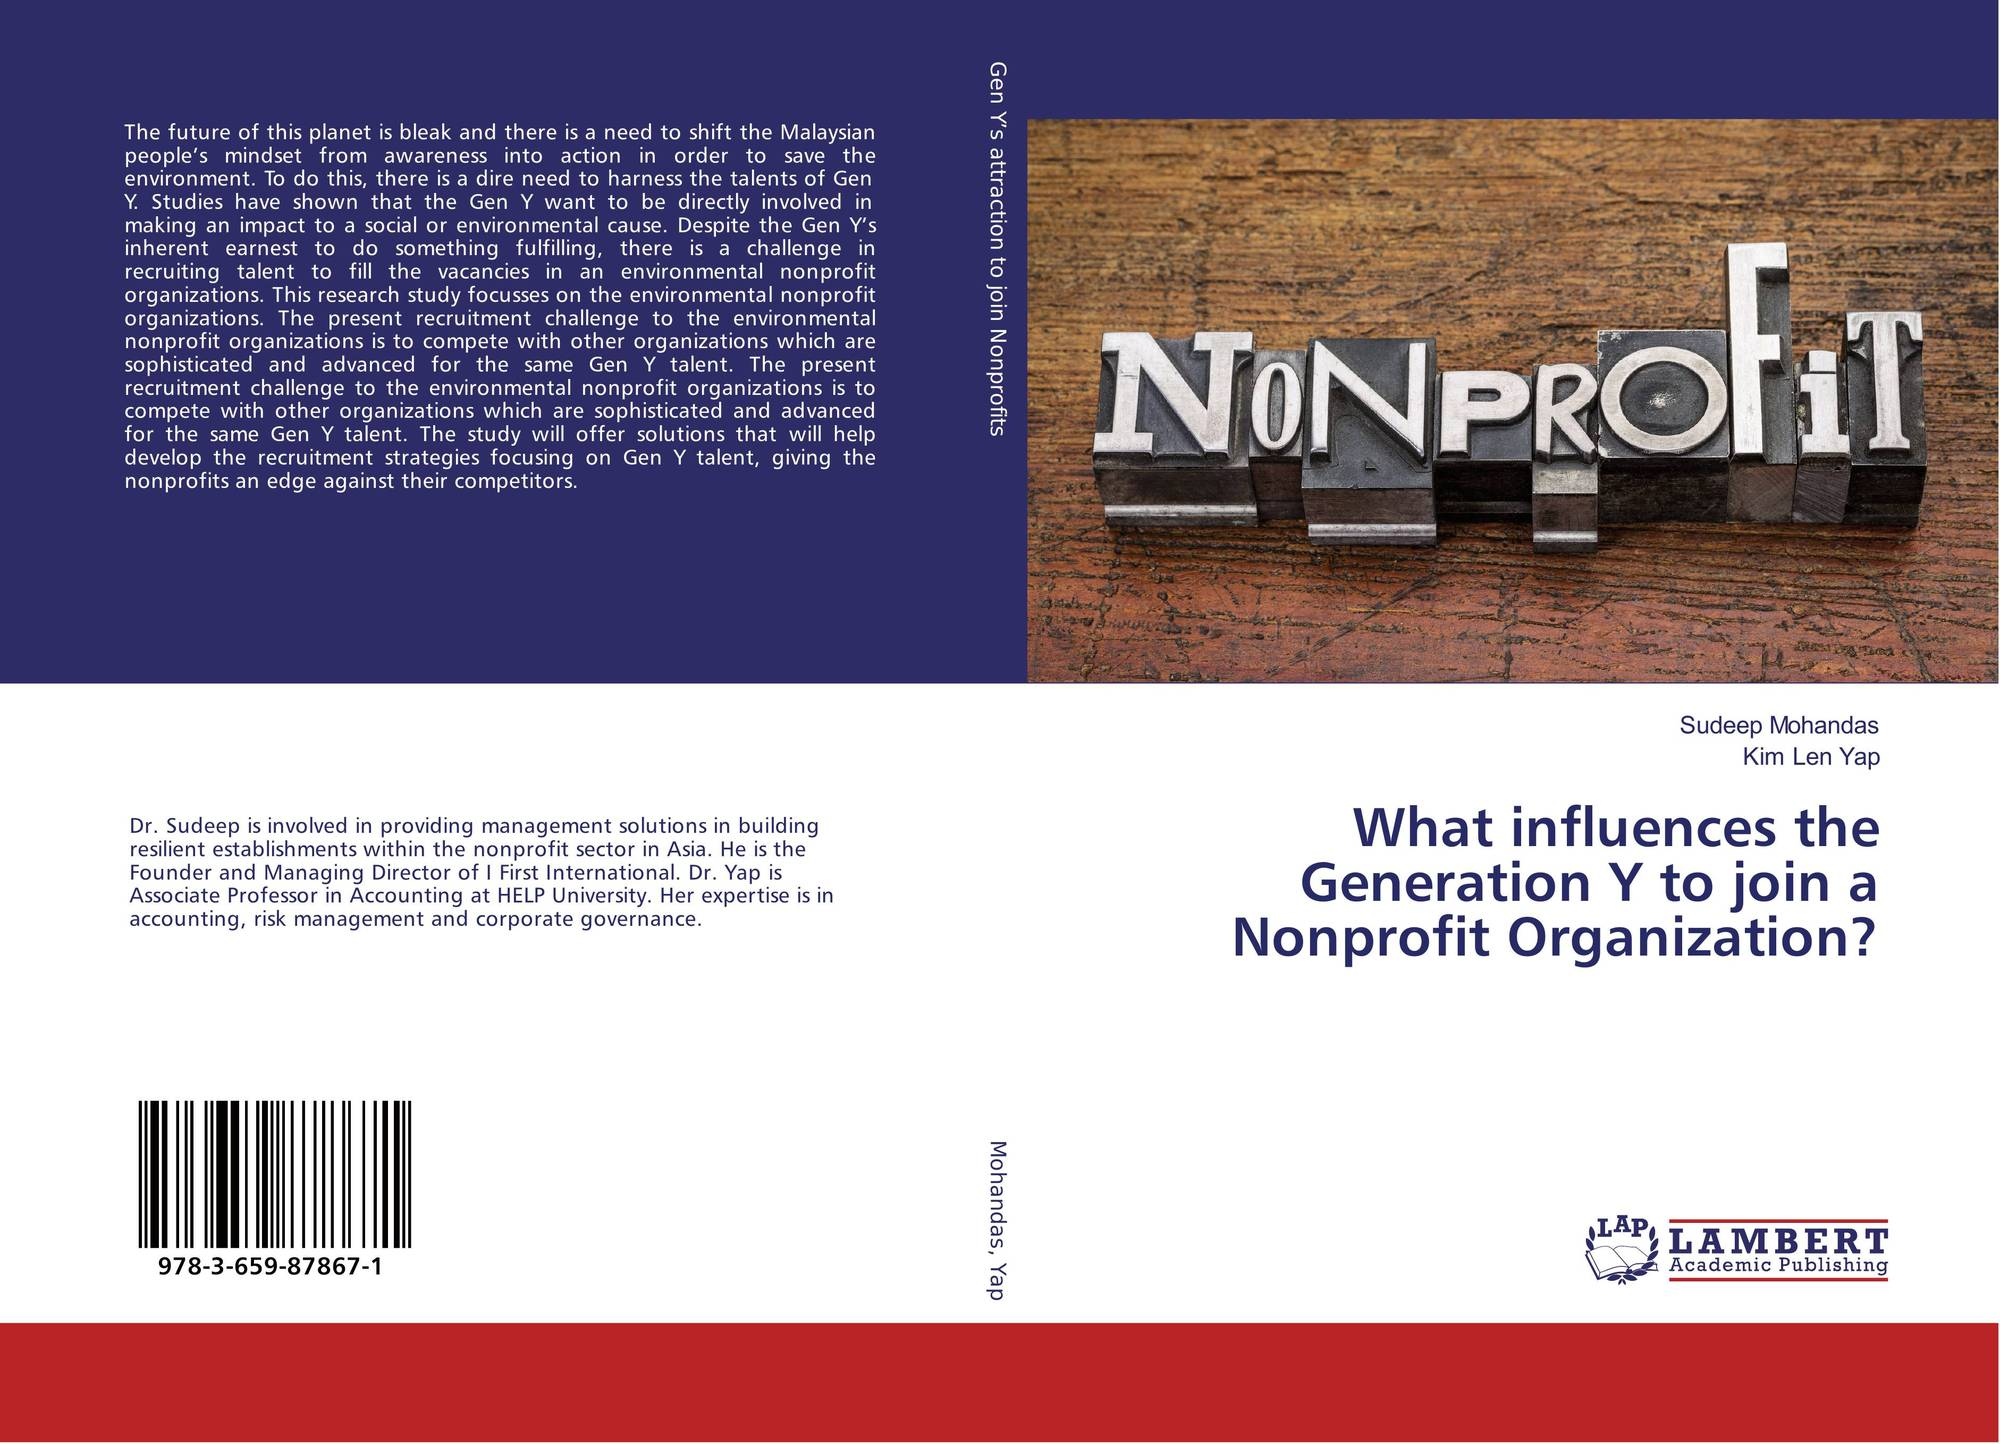 Published in 2016 by LAMBERT Publishers. This book covers a technical view of why it is important to know how to harness the Gen Y to join a nonprofit organization. Past studies have indicated that the Gen Y do want to make an impact to society and are looking for channels of how to express their desires. Despite this understanding the Gen Y are challenged when it comes to even joining a Nonprofit Organisation. The book is purely based on research and the extent of the study was in Malaysia over a year. The study offers solutions of how to tackle the issue of finding top talent from the Gen Y pool to join the Nonprofit Organisation. The various angles the authors take the reader is to understand how important are benefits, career, work life, brand image and passion to attracting the Gen Y to the organization. The book is a reference to Dr. Sudeep' Doctorate Research Study supported by his Supervisor Dr. Yap Kim Len. The book is available on Amazon.